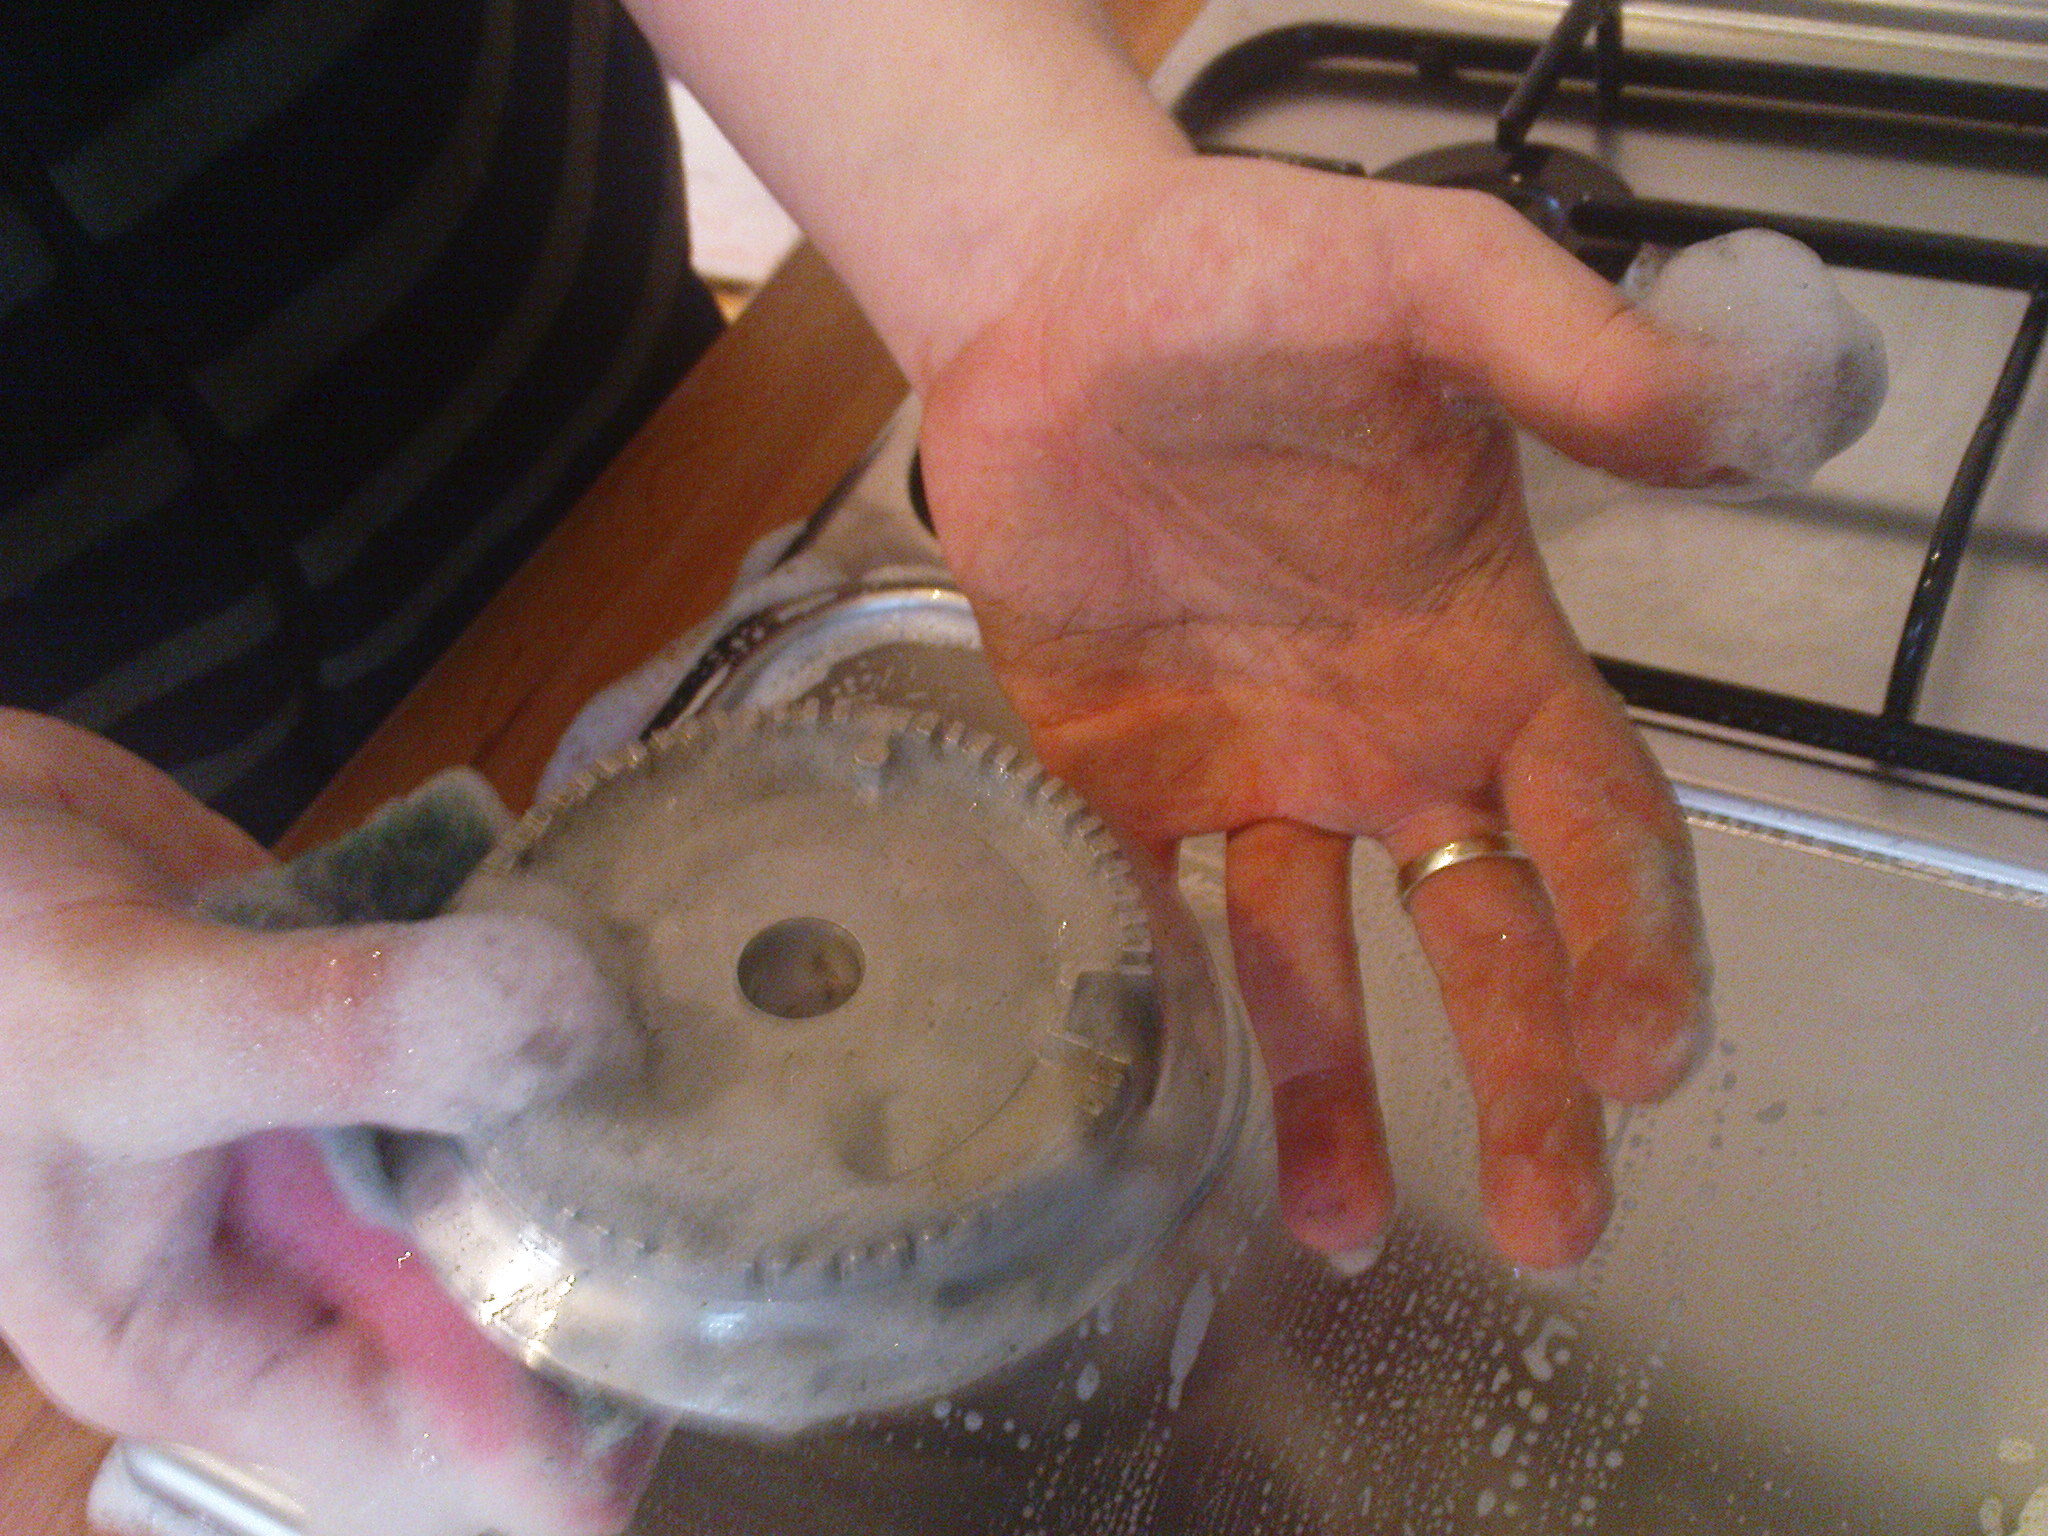 Chris' hands were clean before starting on the cooker